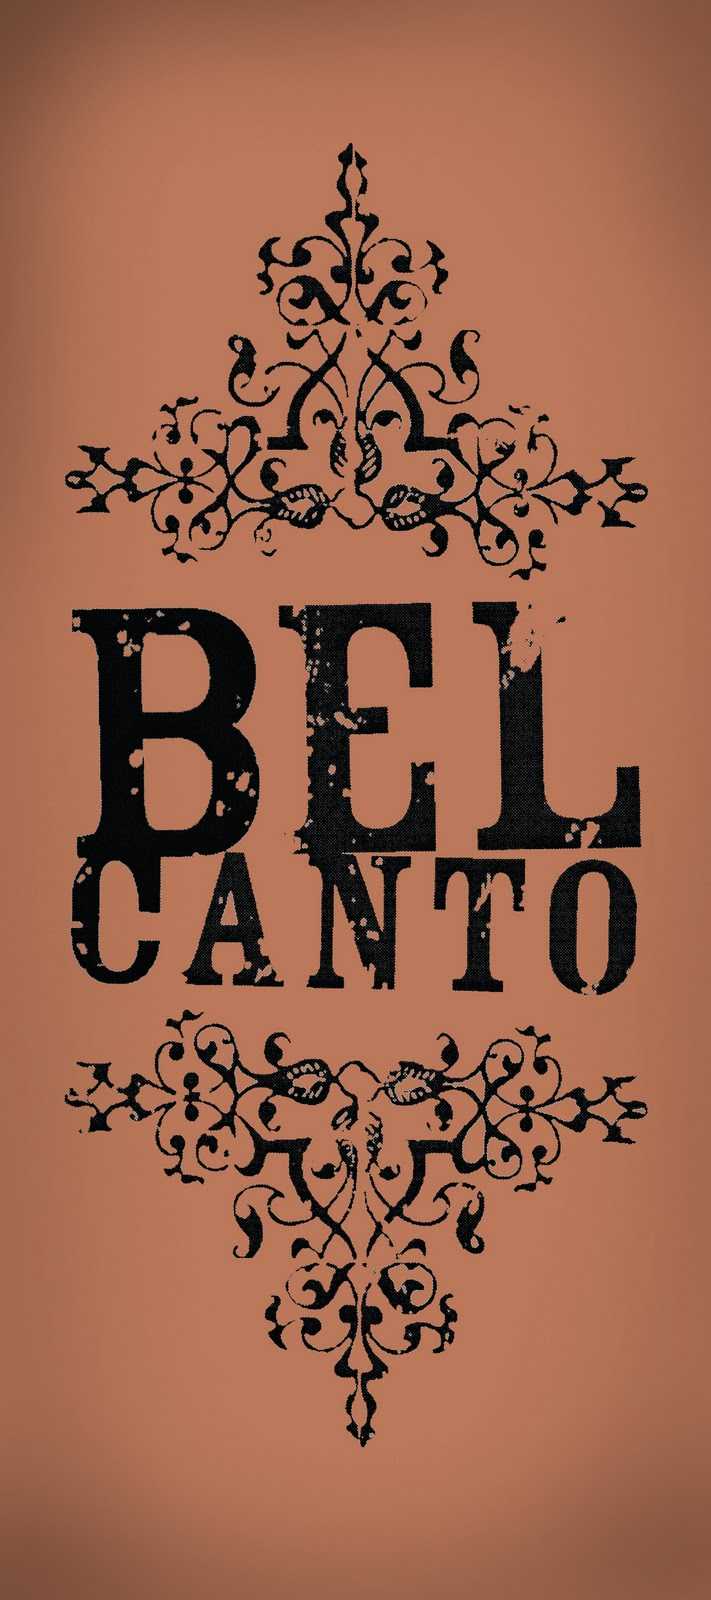 bel canto opera essay Bel canto - the old italian vocal technique and its golden age this essay discusses the historical development of the vocal technique bel canto it traces the golden age in the opera composition and the people behind the classic works in italian opera.